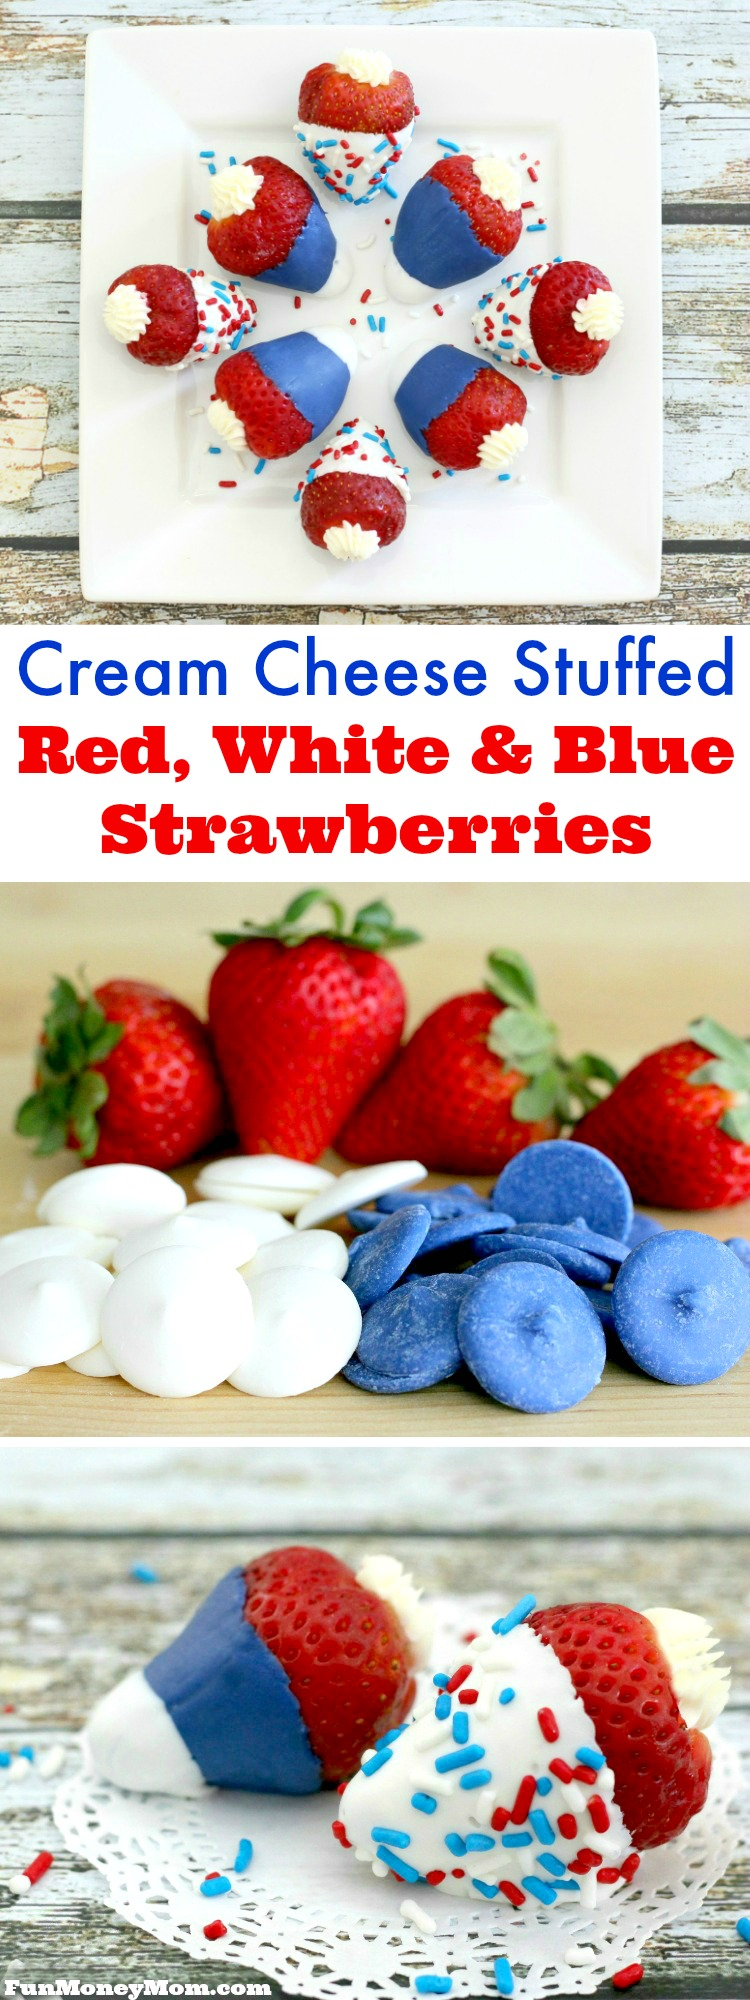 These colorful and fun Red, White & Blue Strawberries are perfect for Memorial Day, Fourth Of July or just anytime you're feeling a little patriotic!